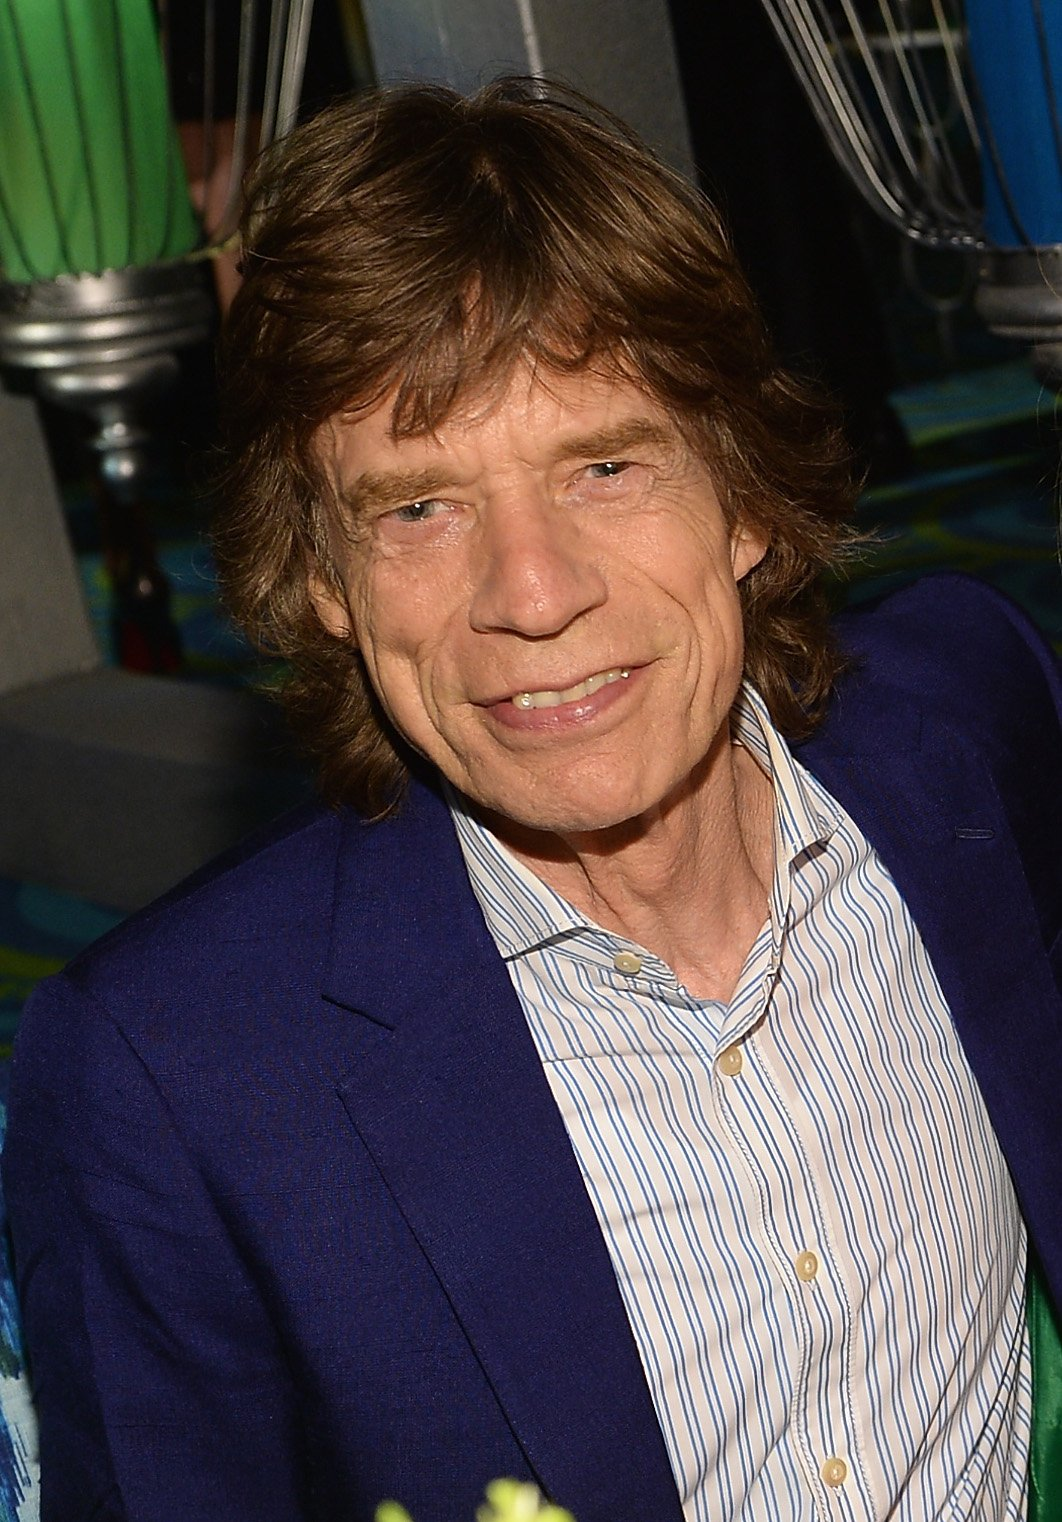 Image Credits: Getty Images | Mick Jagger has an alien detector at home